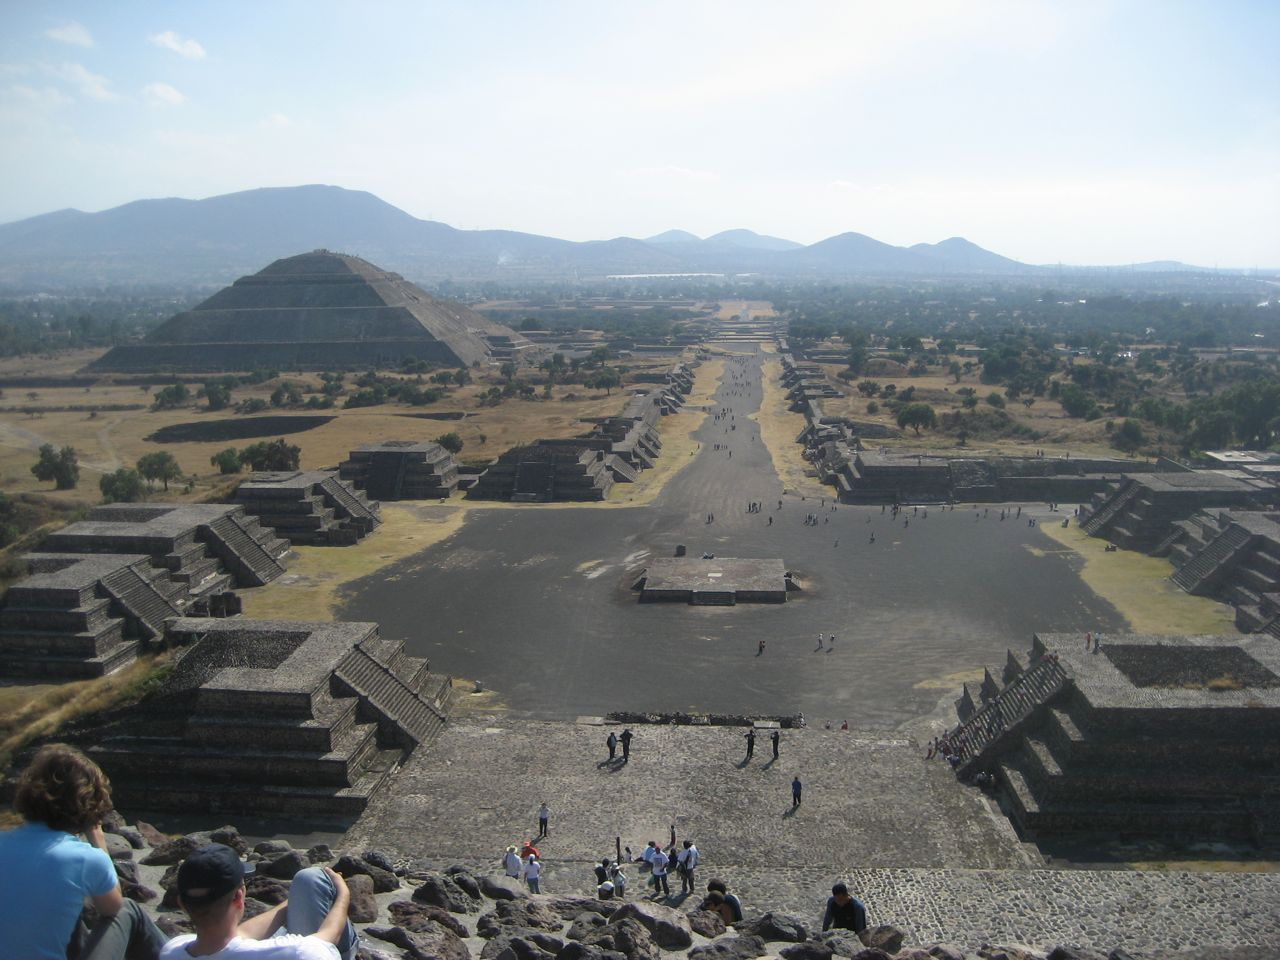 the wonders of tenochtitlan Especially important were his descriptions of the valley of mexico, particularly tenochtitlan, and his explanations for the actions he took excerpts from first letter.